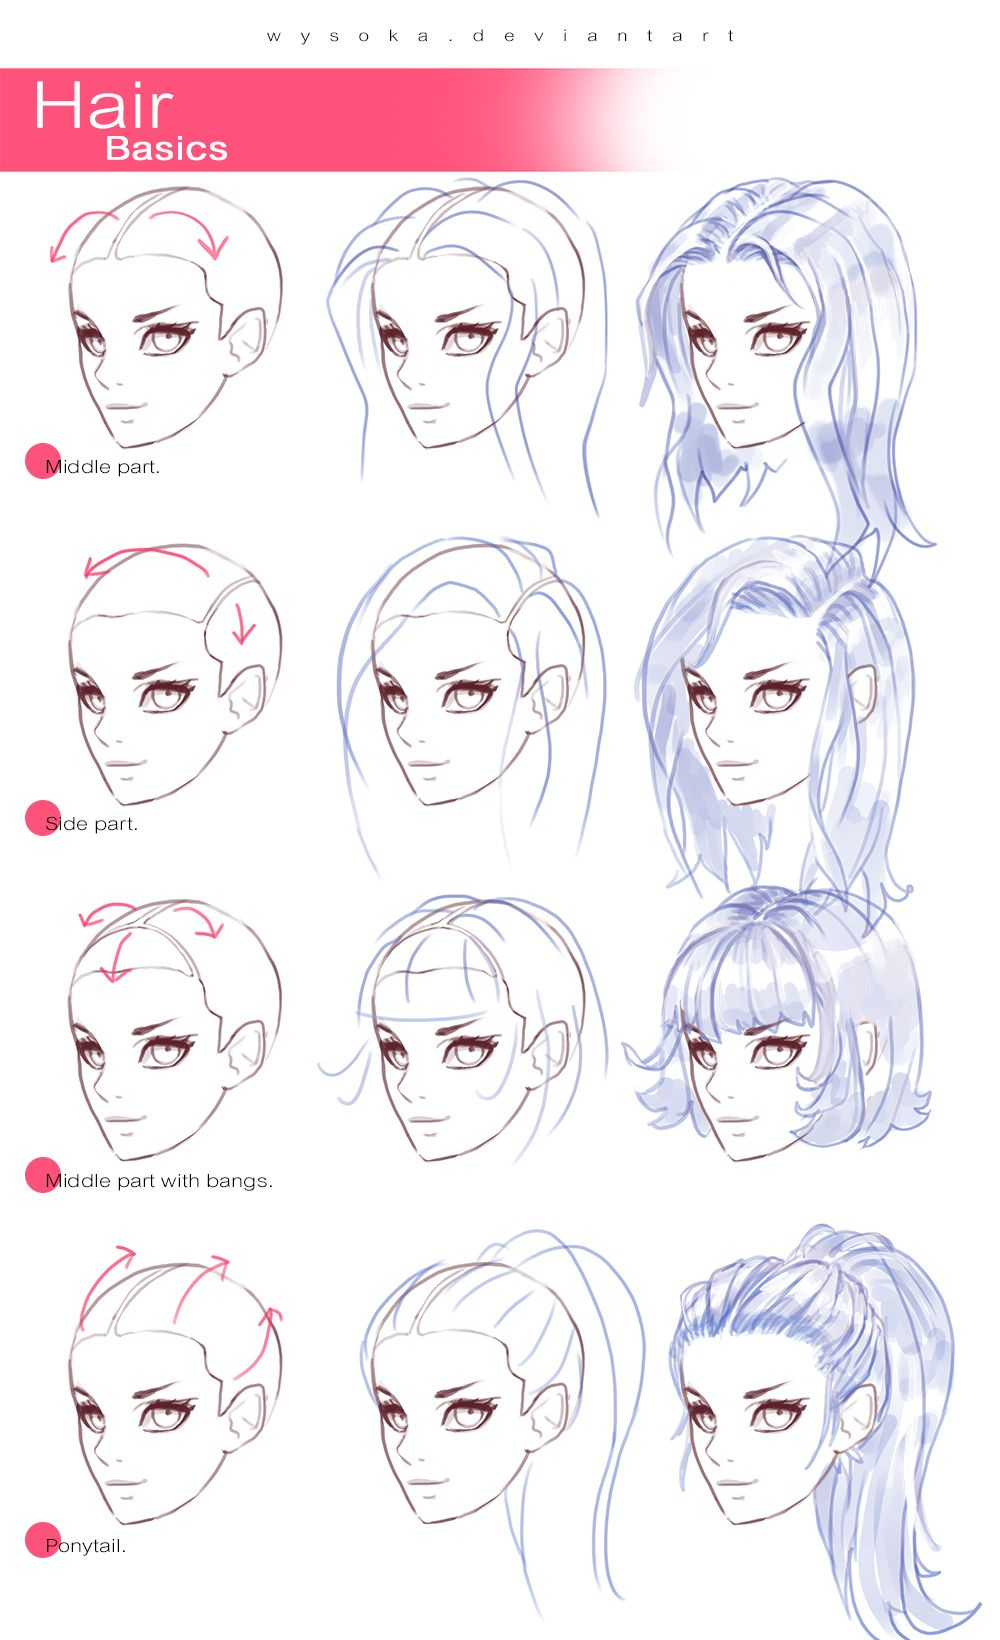 drawingden: How To Draw Hair 2 by wysoka | Comic Drawing ...